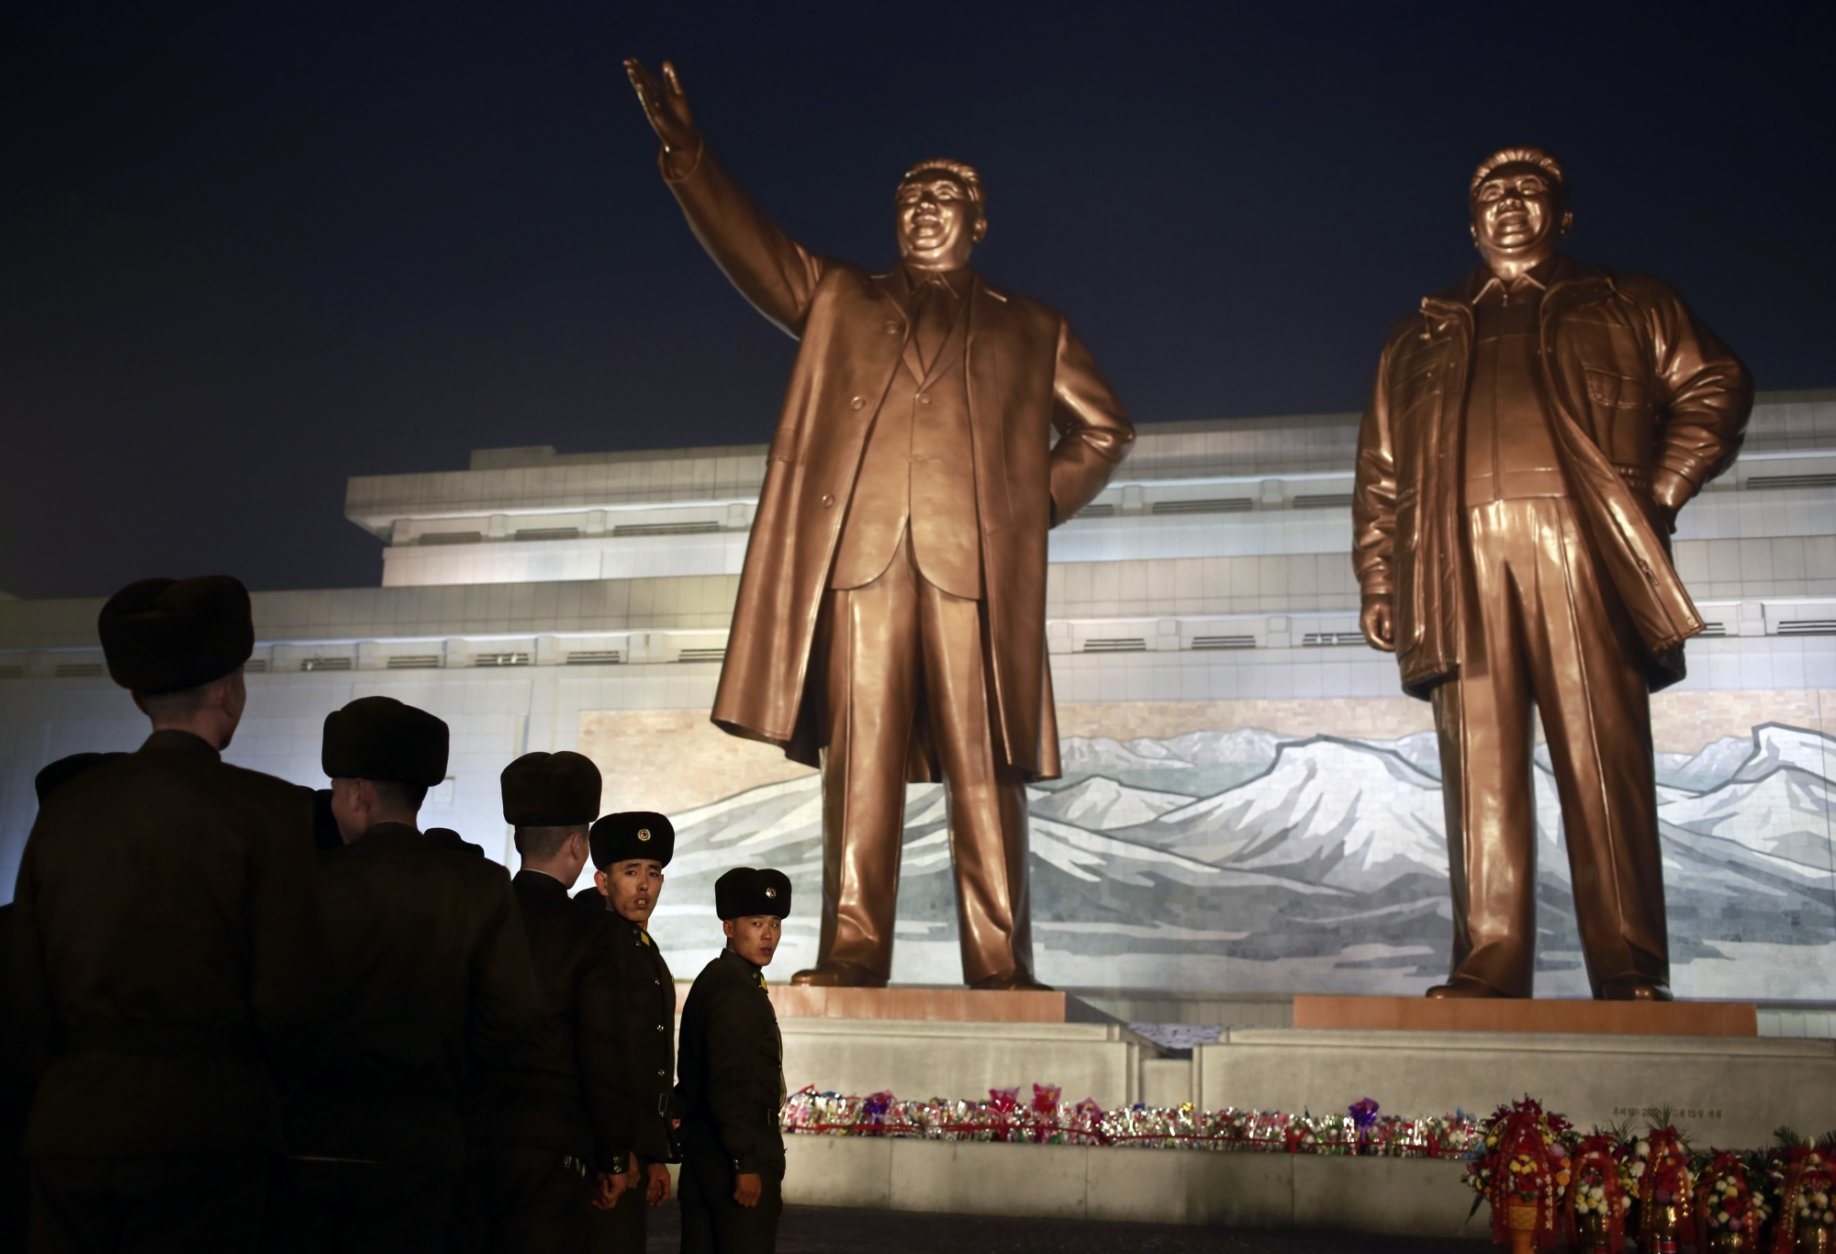 North Korean soldiers line up as they pay respect to the bronze statues of their late leaders Kim Il Sung and Kim Jong Il at Mansu Hill Grand Monument in Pyongyang, North Korea, Sunday, Dec. 16, 2018. Many North Koreans are marking the seventh anniversary of the death of leader Kim Jong Il with visits to the statues and vows of loyalty to his son, Kim Jong Un. (AP Photo/Dita Alangkara)